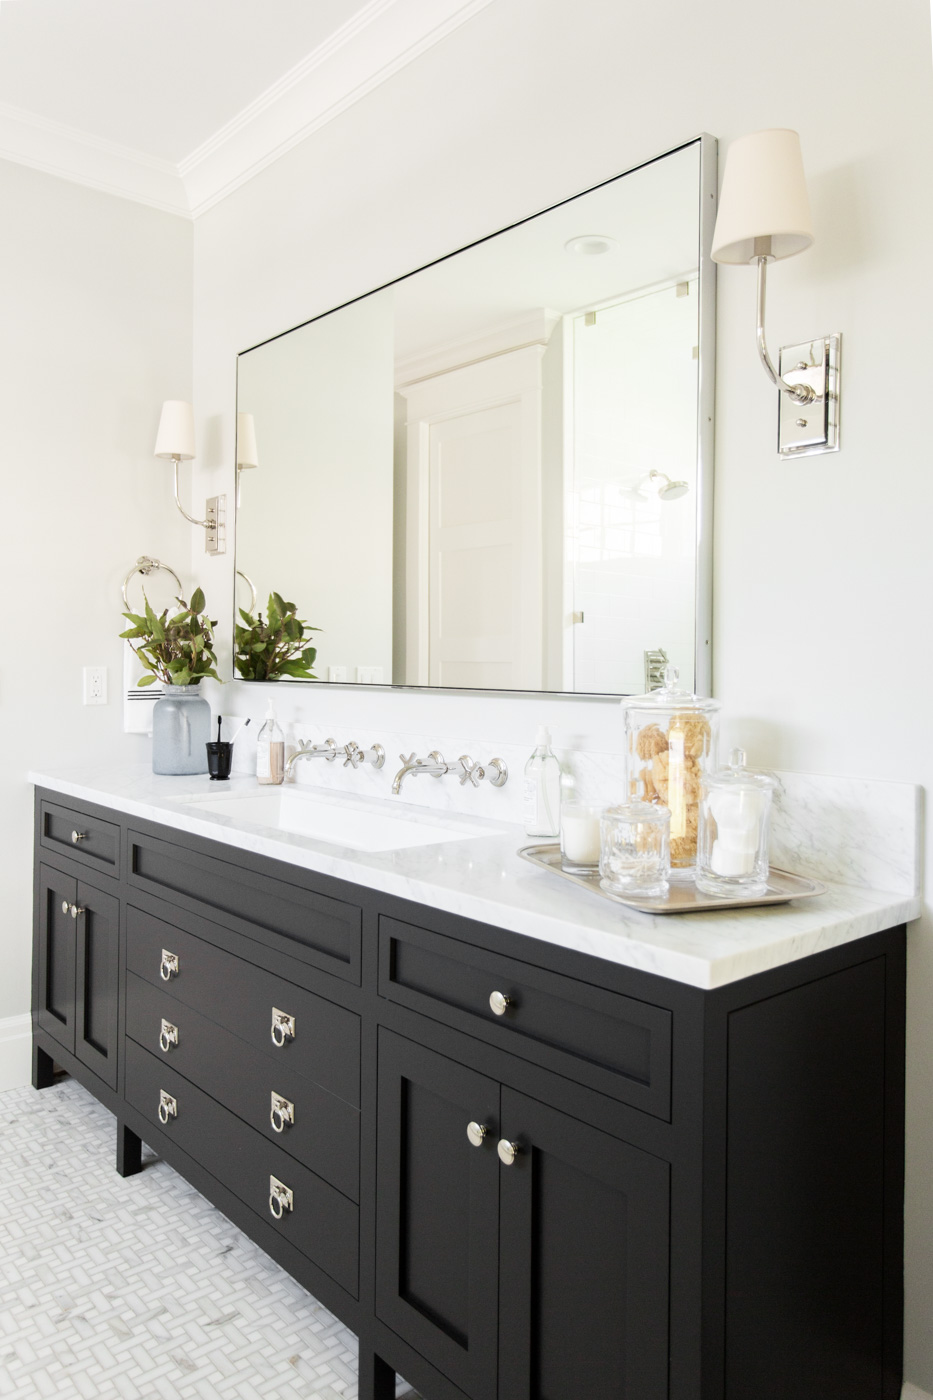 Large back mirror above vanity